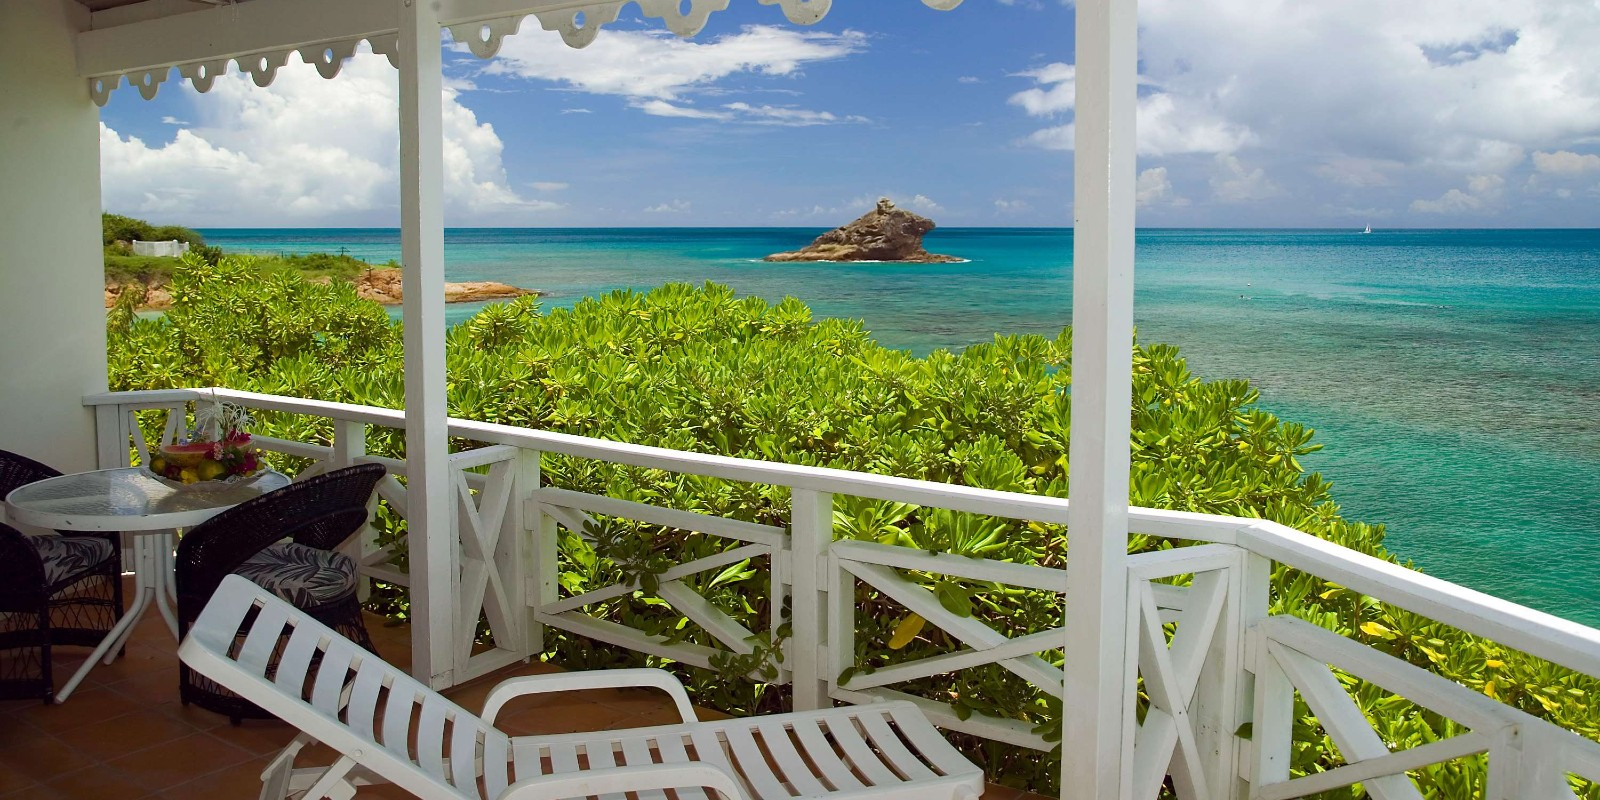 Travel blog: Why You Should be Considering These 4 TripAdvisor Favourite Resorts in Antigua